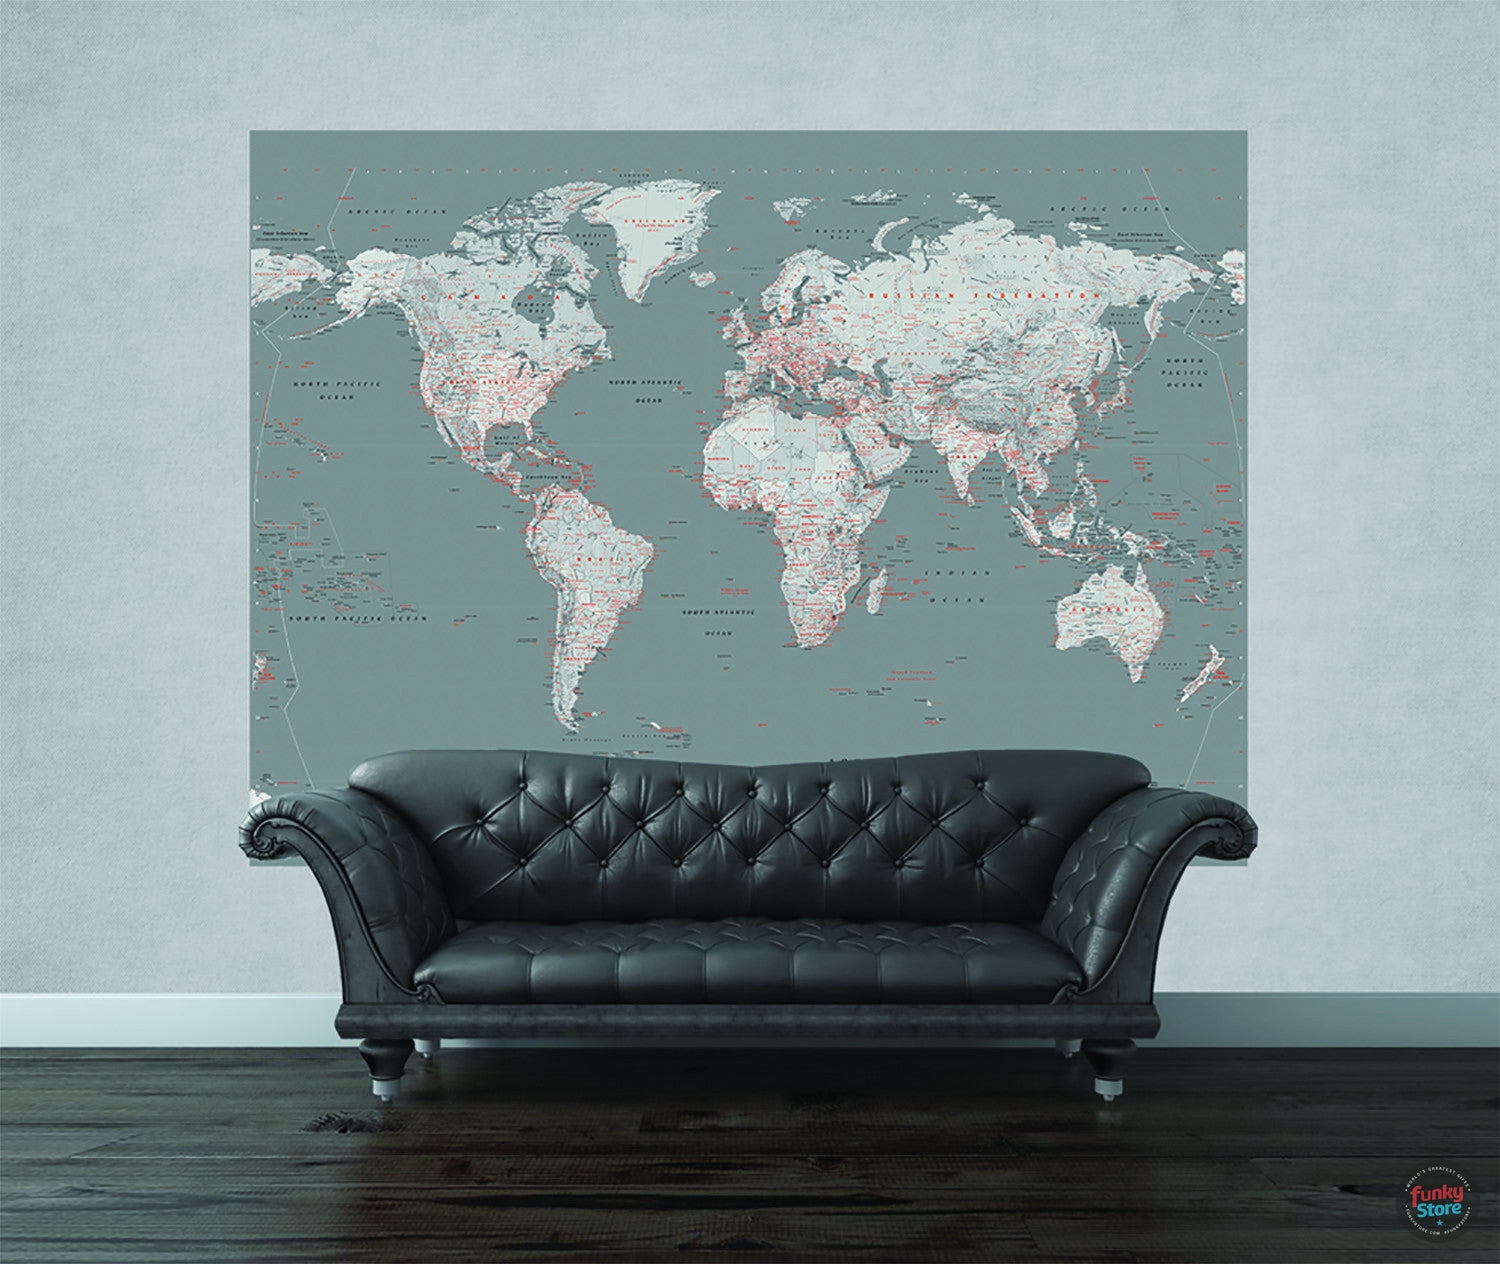 Silver world map wall mural funky store silver world map wall mural amipublicfo Gallery